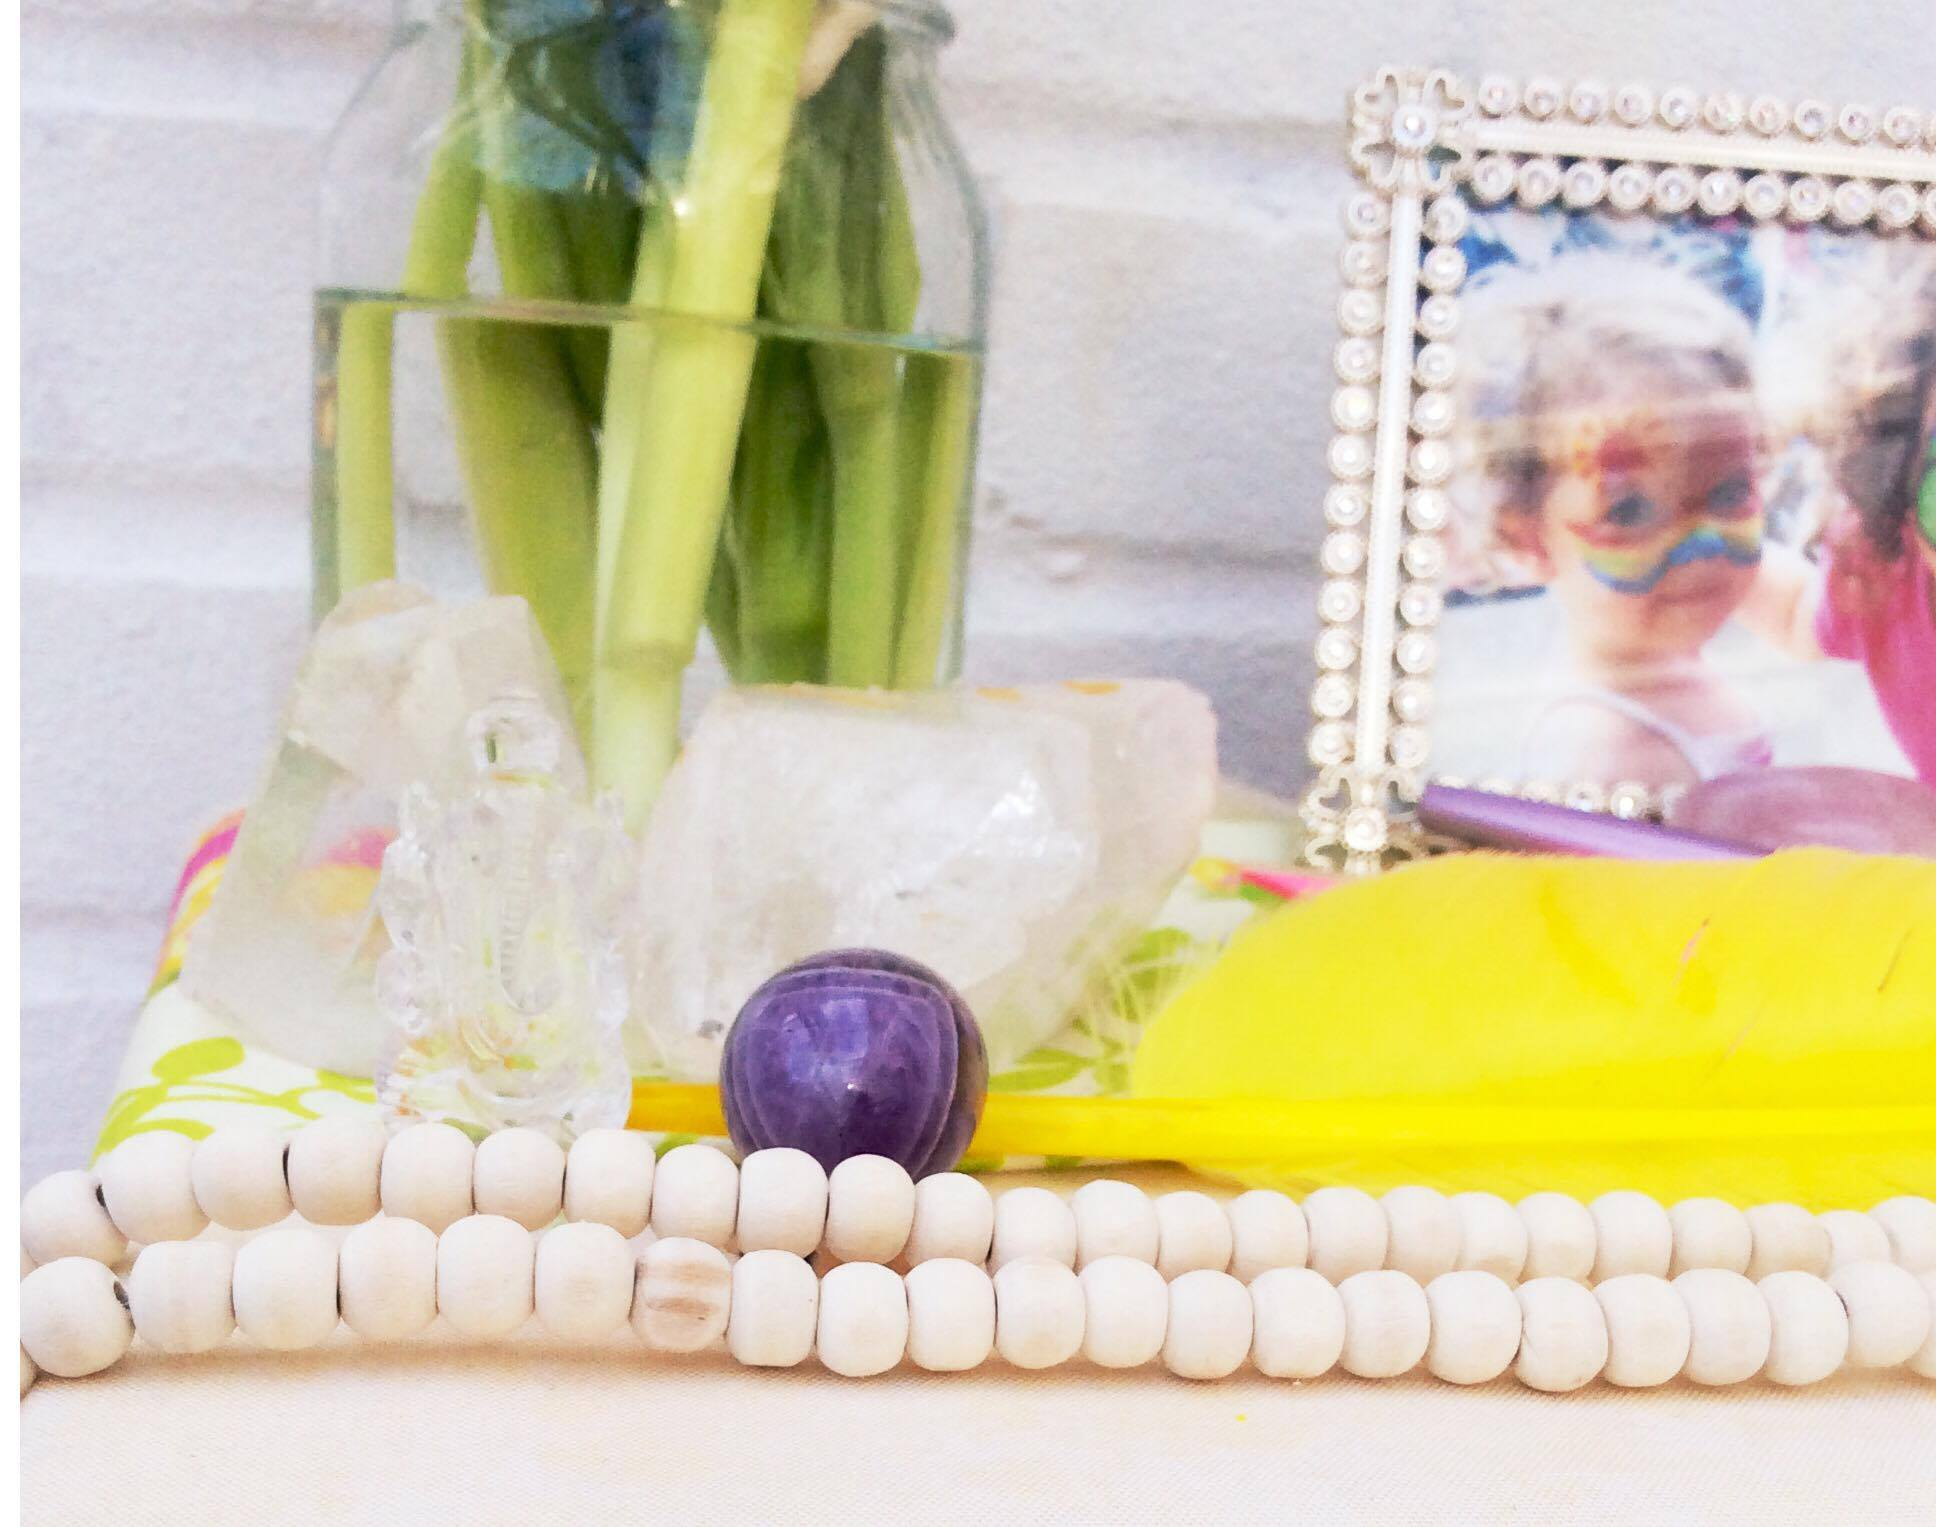 Included are a clear quartz Ganesha and amethyst egg, both which represent new beginnings.